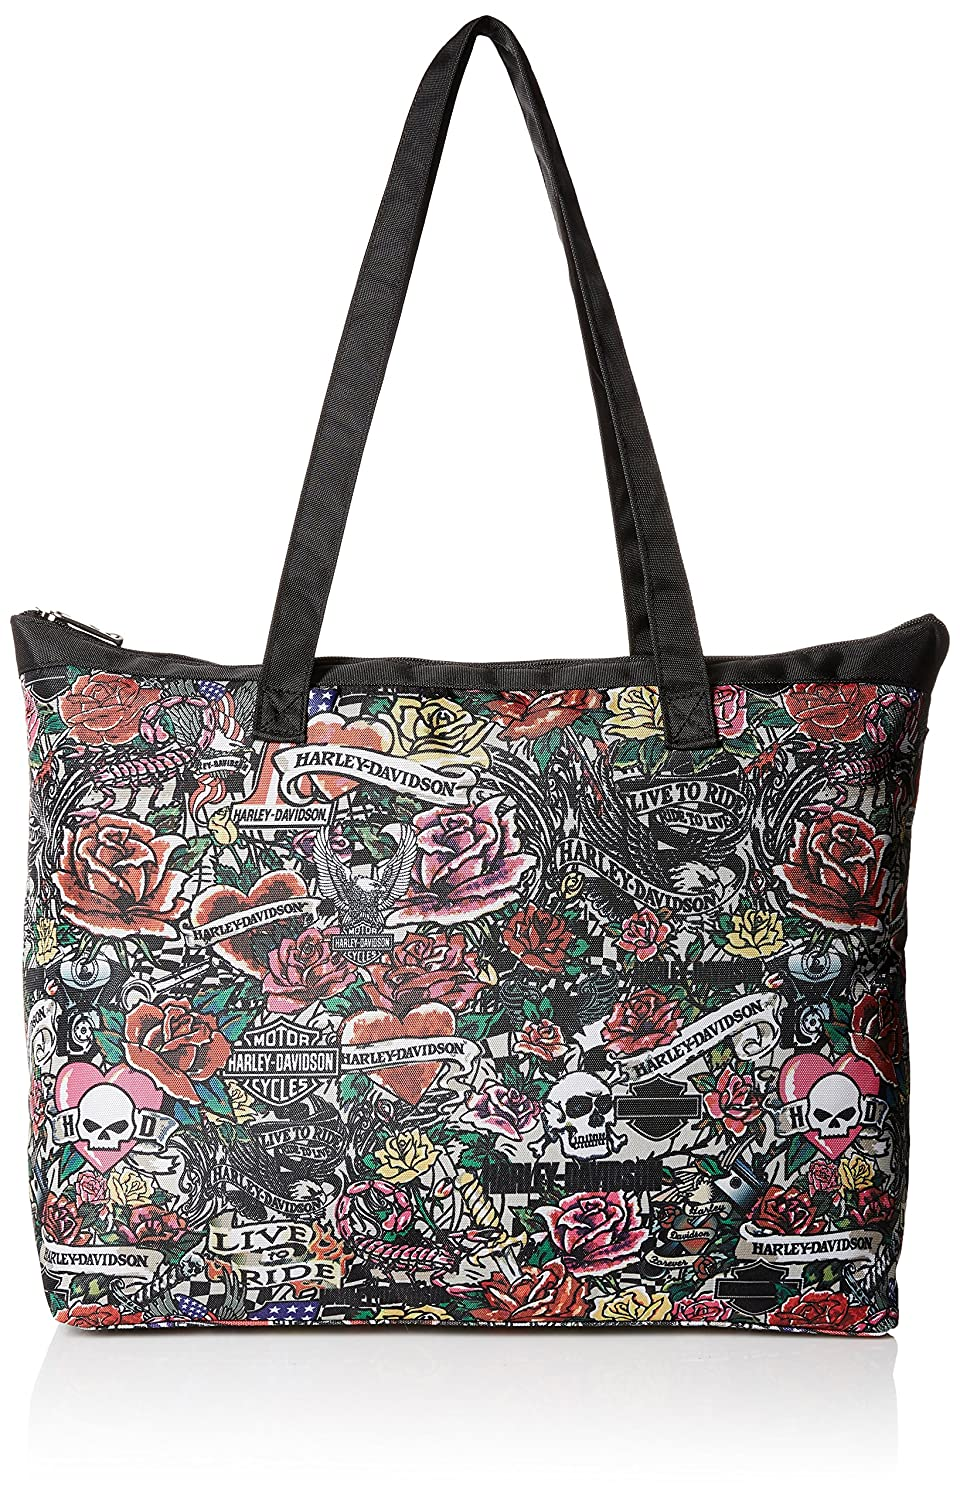 Harley Davidson Shopper Tote, Tattoo